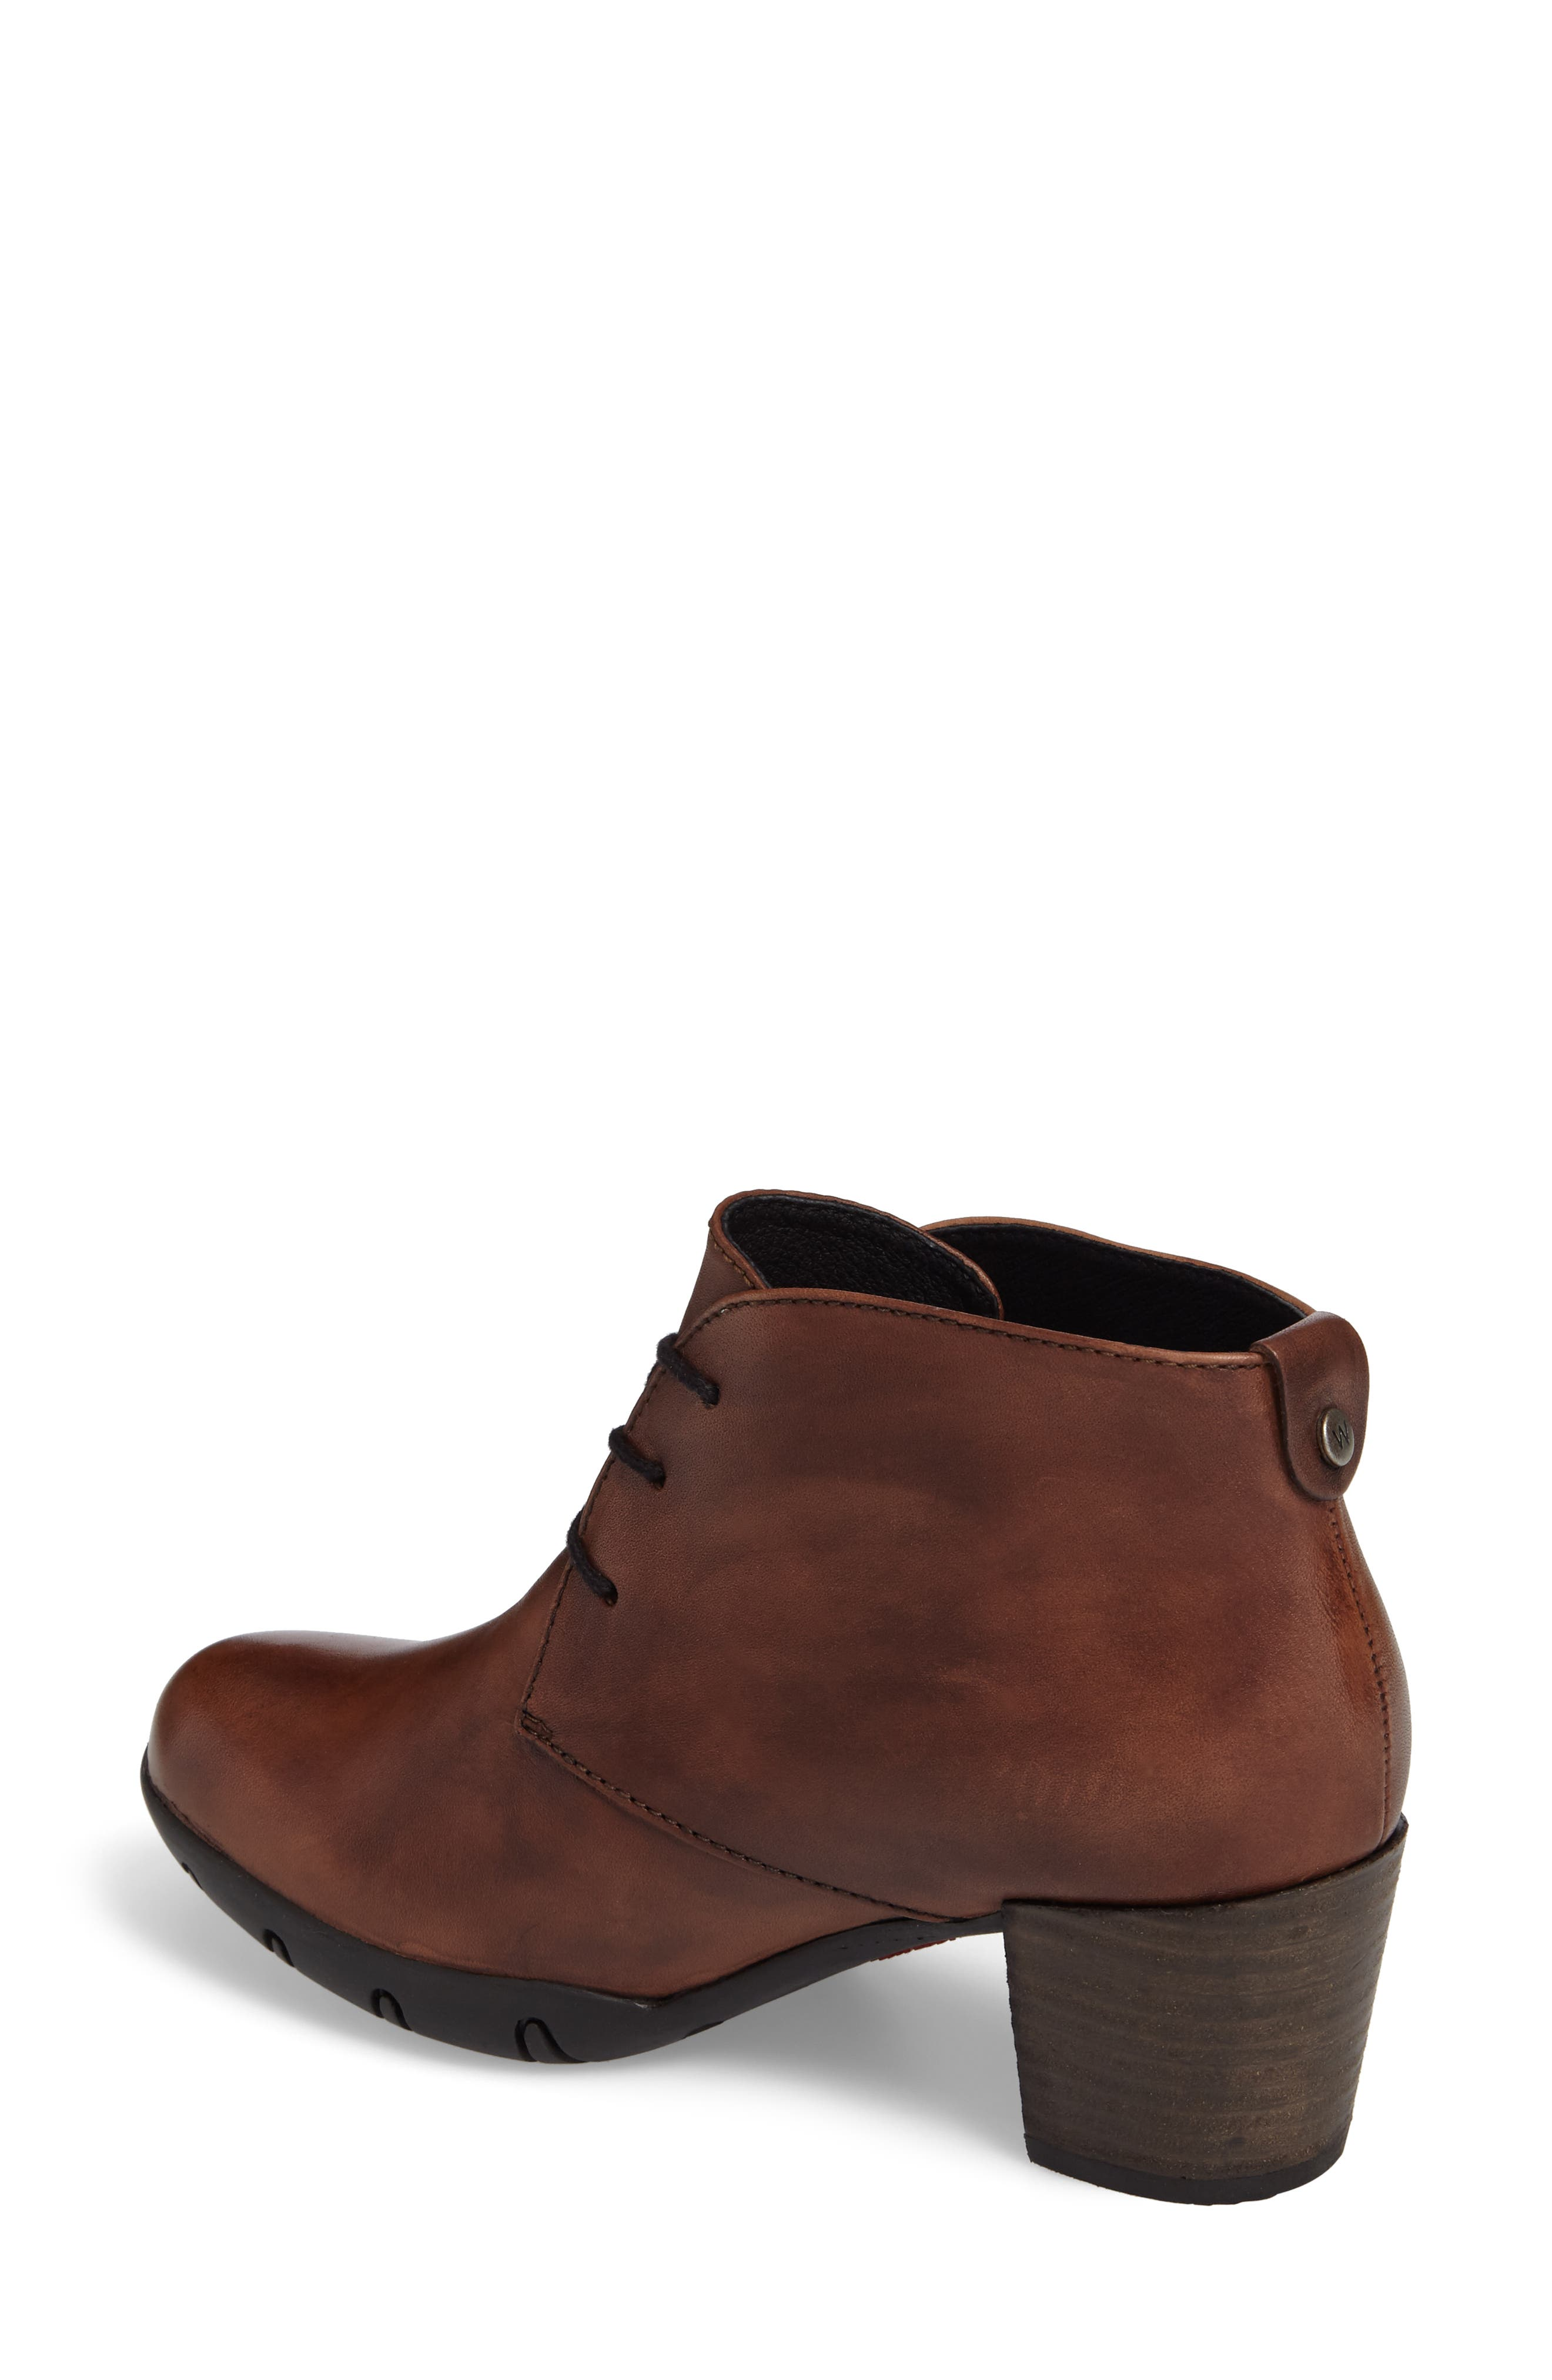 Bighorn Bootie,                             Alternate thumbnail 2, color,                             COGNAC LEATHER